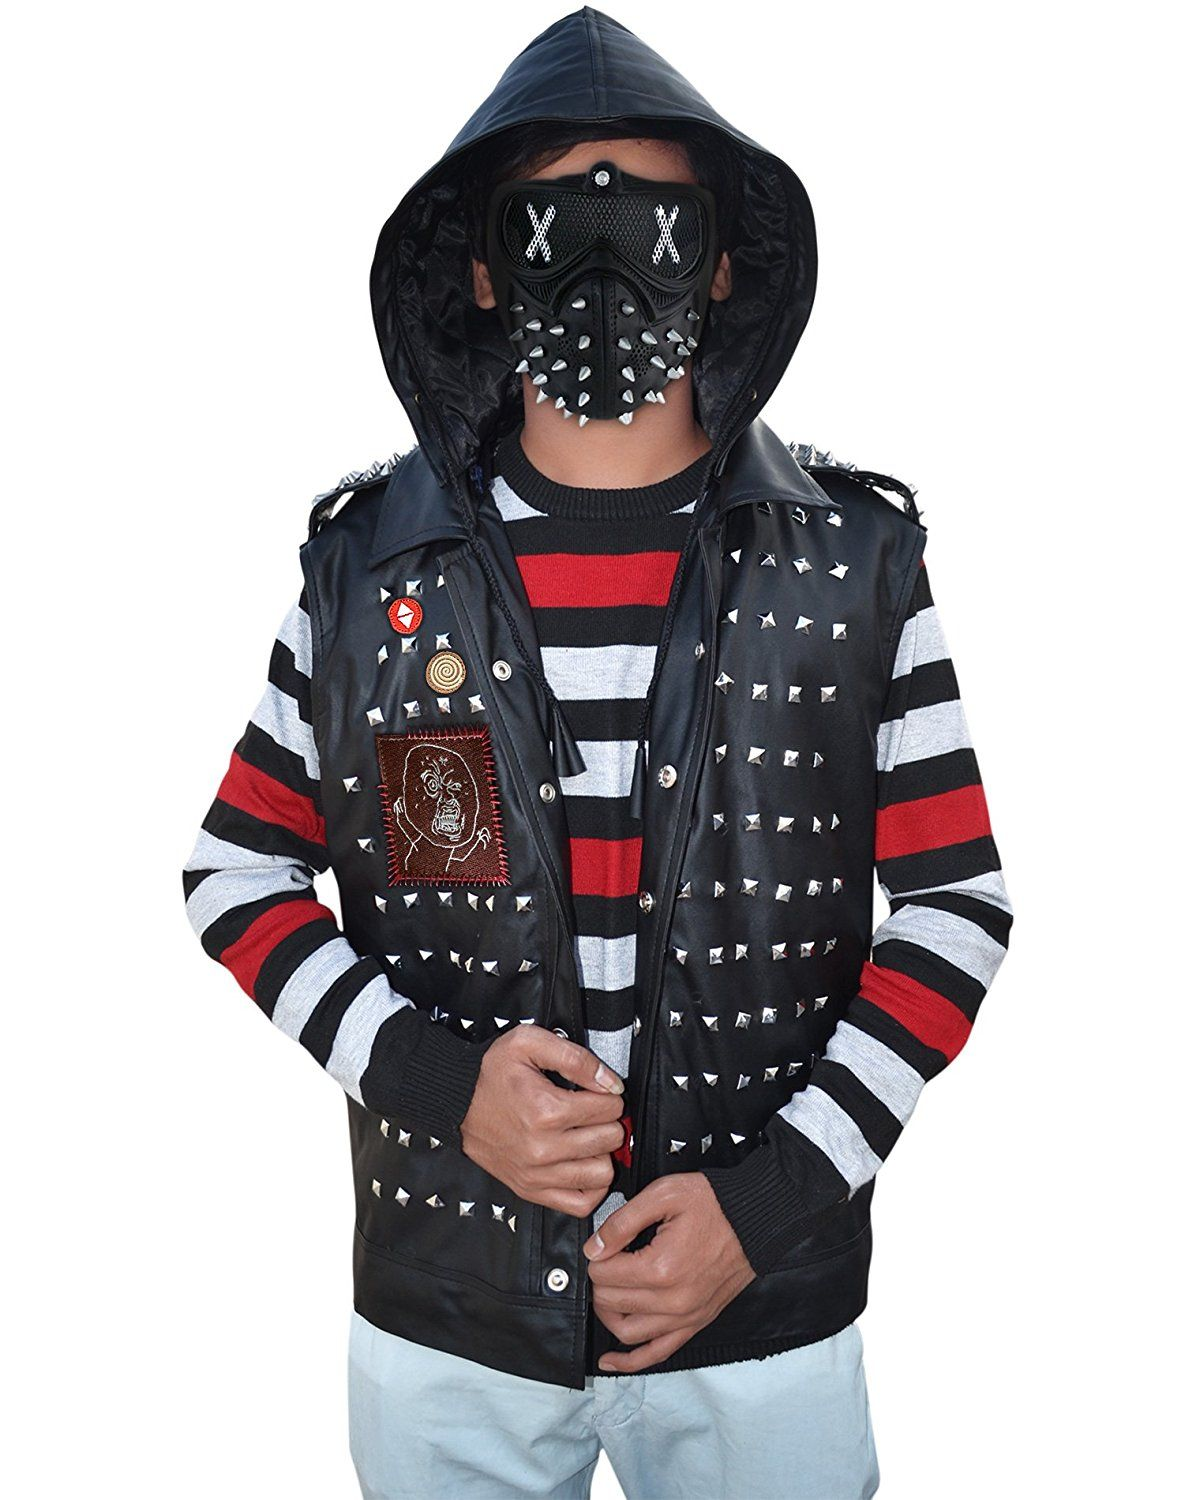 Specifications:  Material: synthetic  Type: Vest  Color: black  Collar: Lapel Style  Studs at front and back  Front: button closure  Patch design on right side  Pointed studs on shoulder  Hood attached